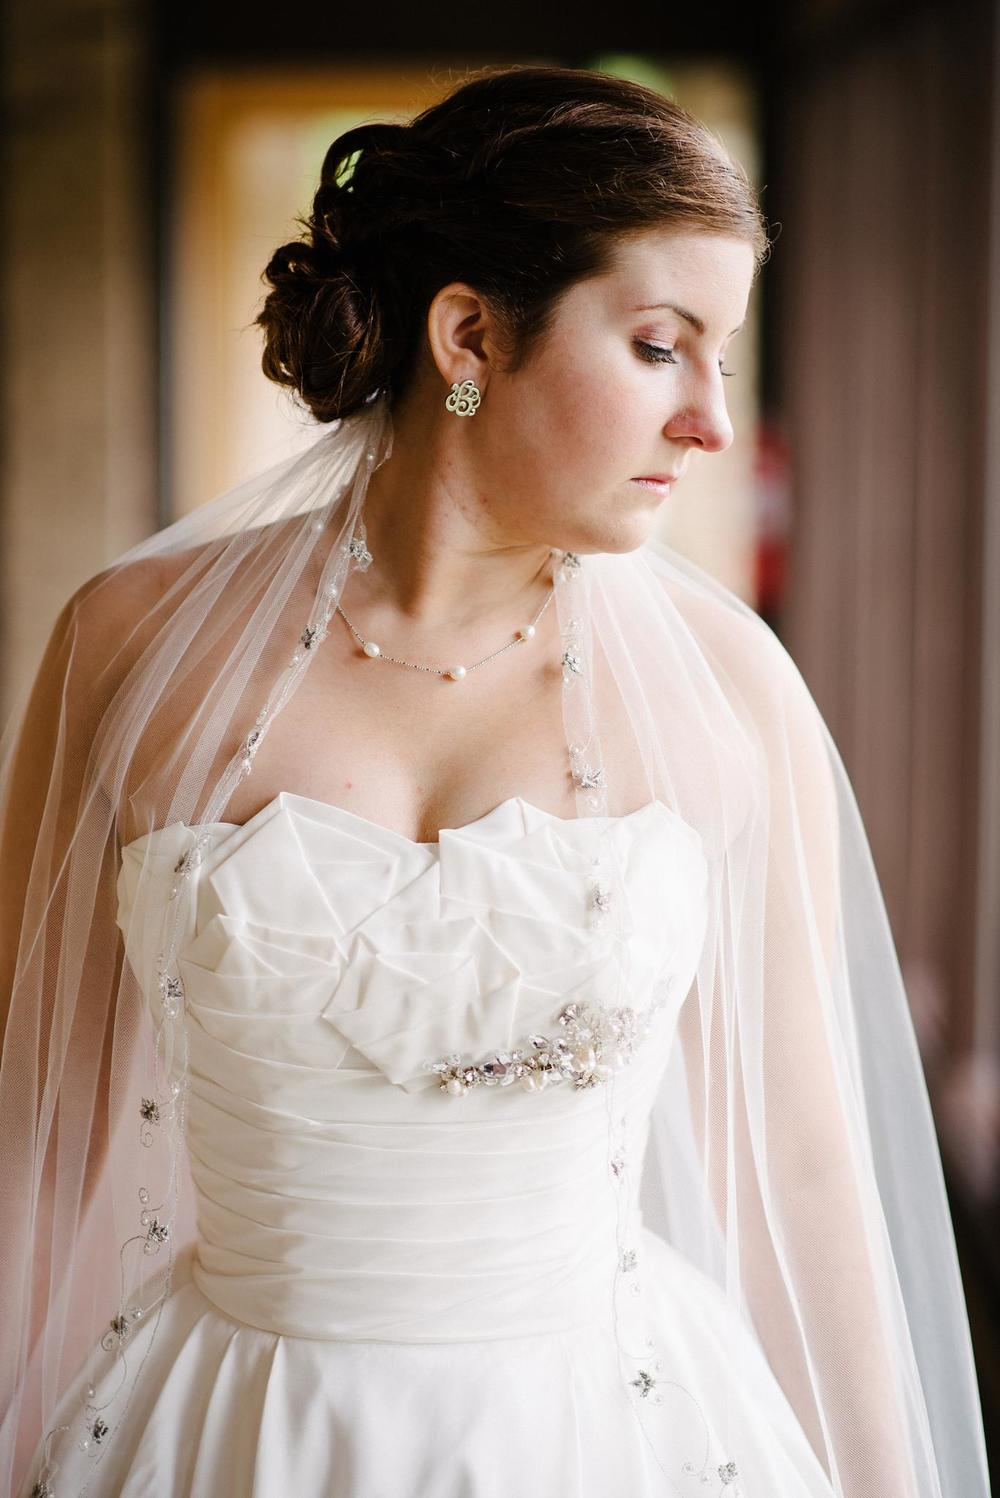 Fredericksburg Country Club Wedding Virginia Rachel Rossetti Photography_0150.jpg